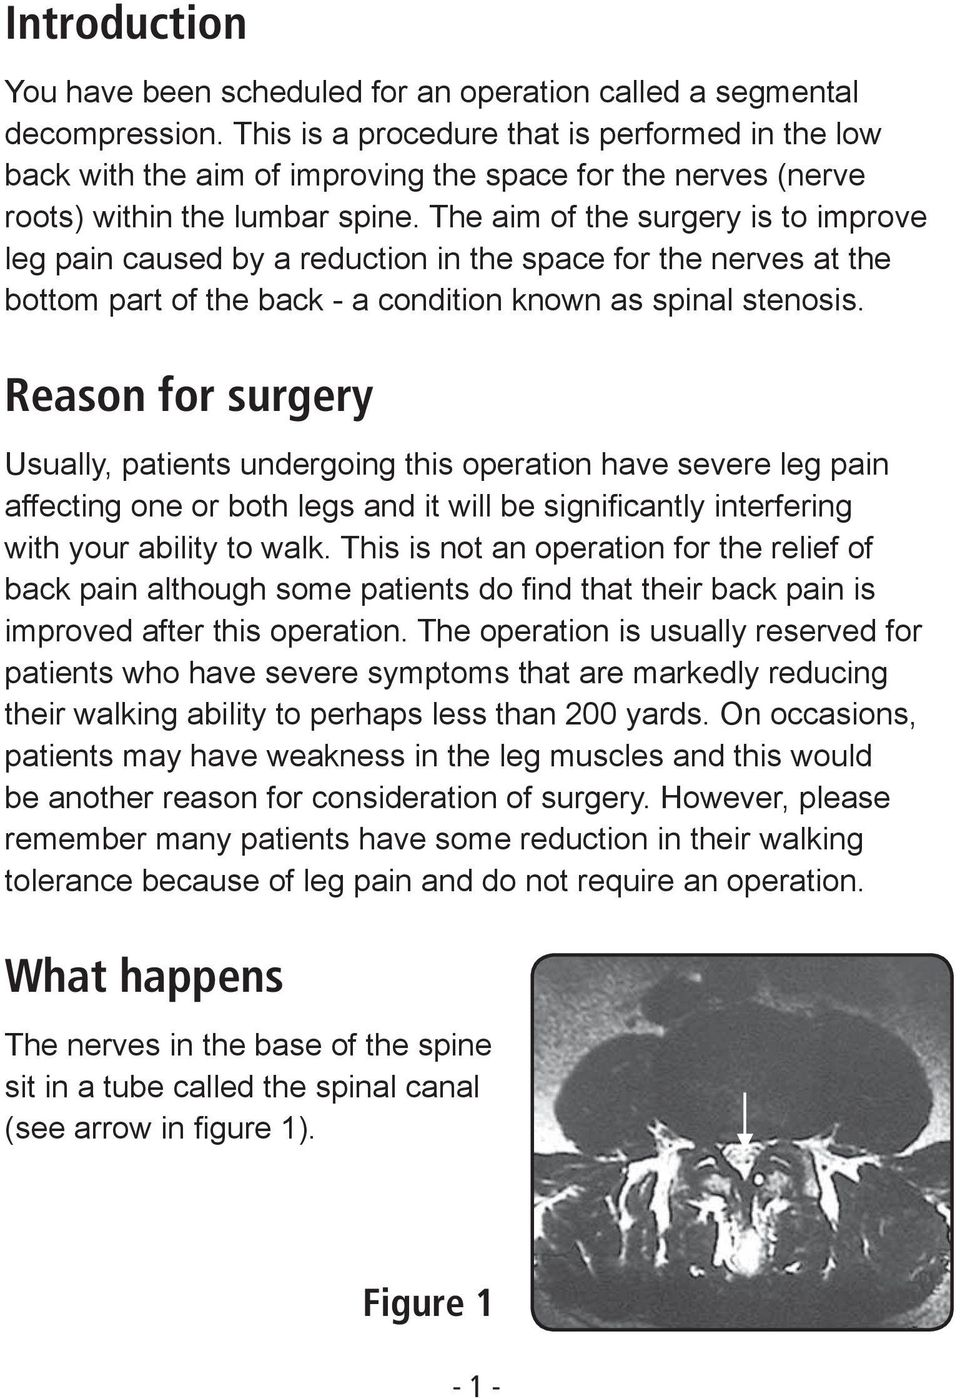 The aim of the surgery is to improve leg pain caused by a reduction in the space for the nerves at the bottom part of the back - a condition known as spinal stenosis.